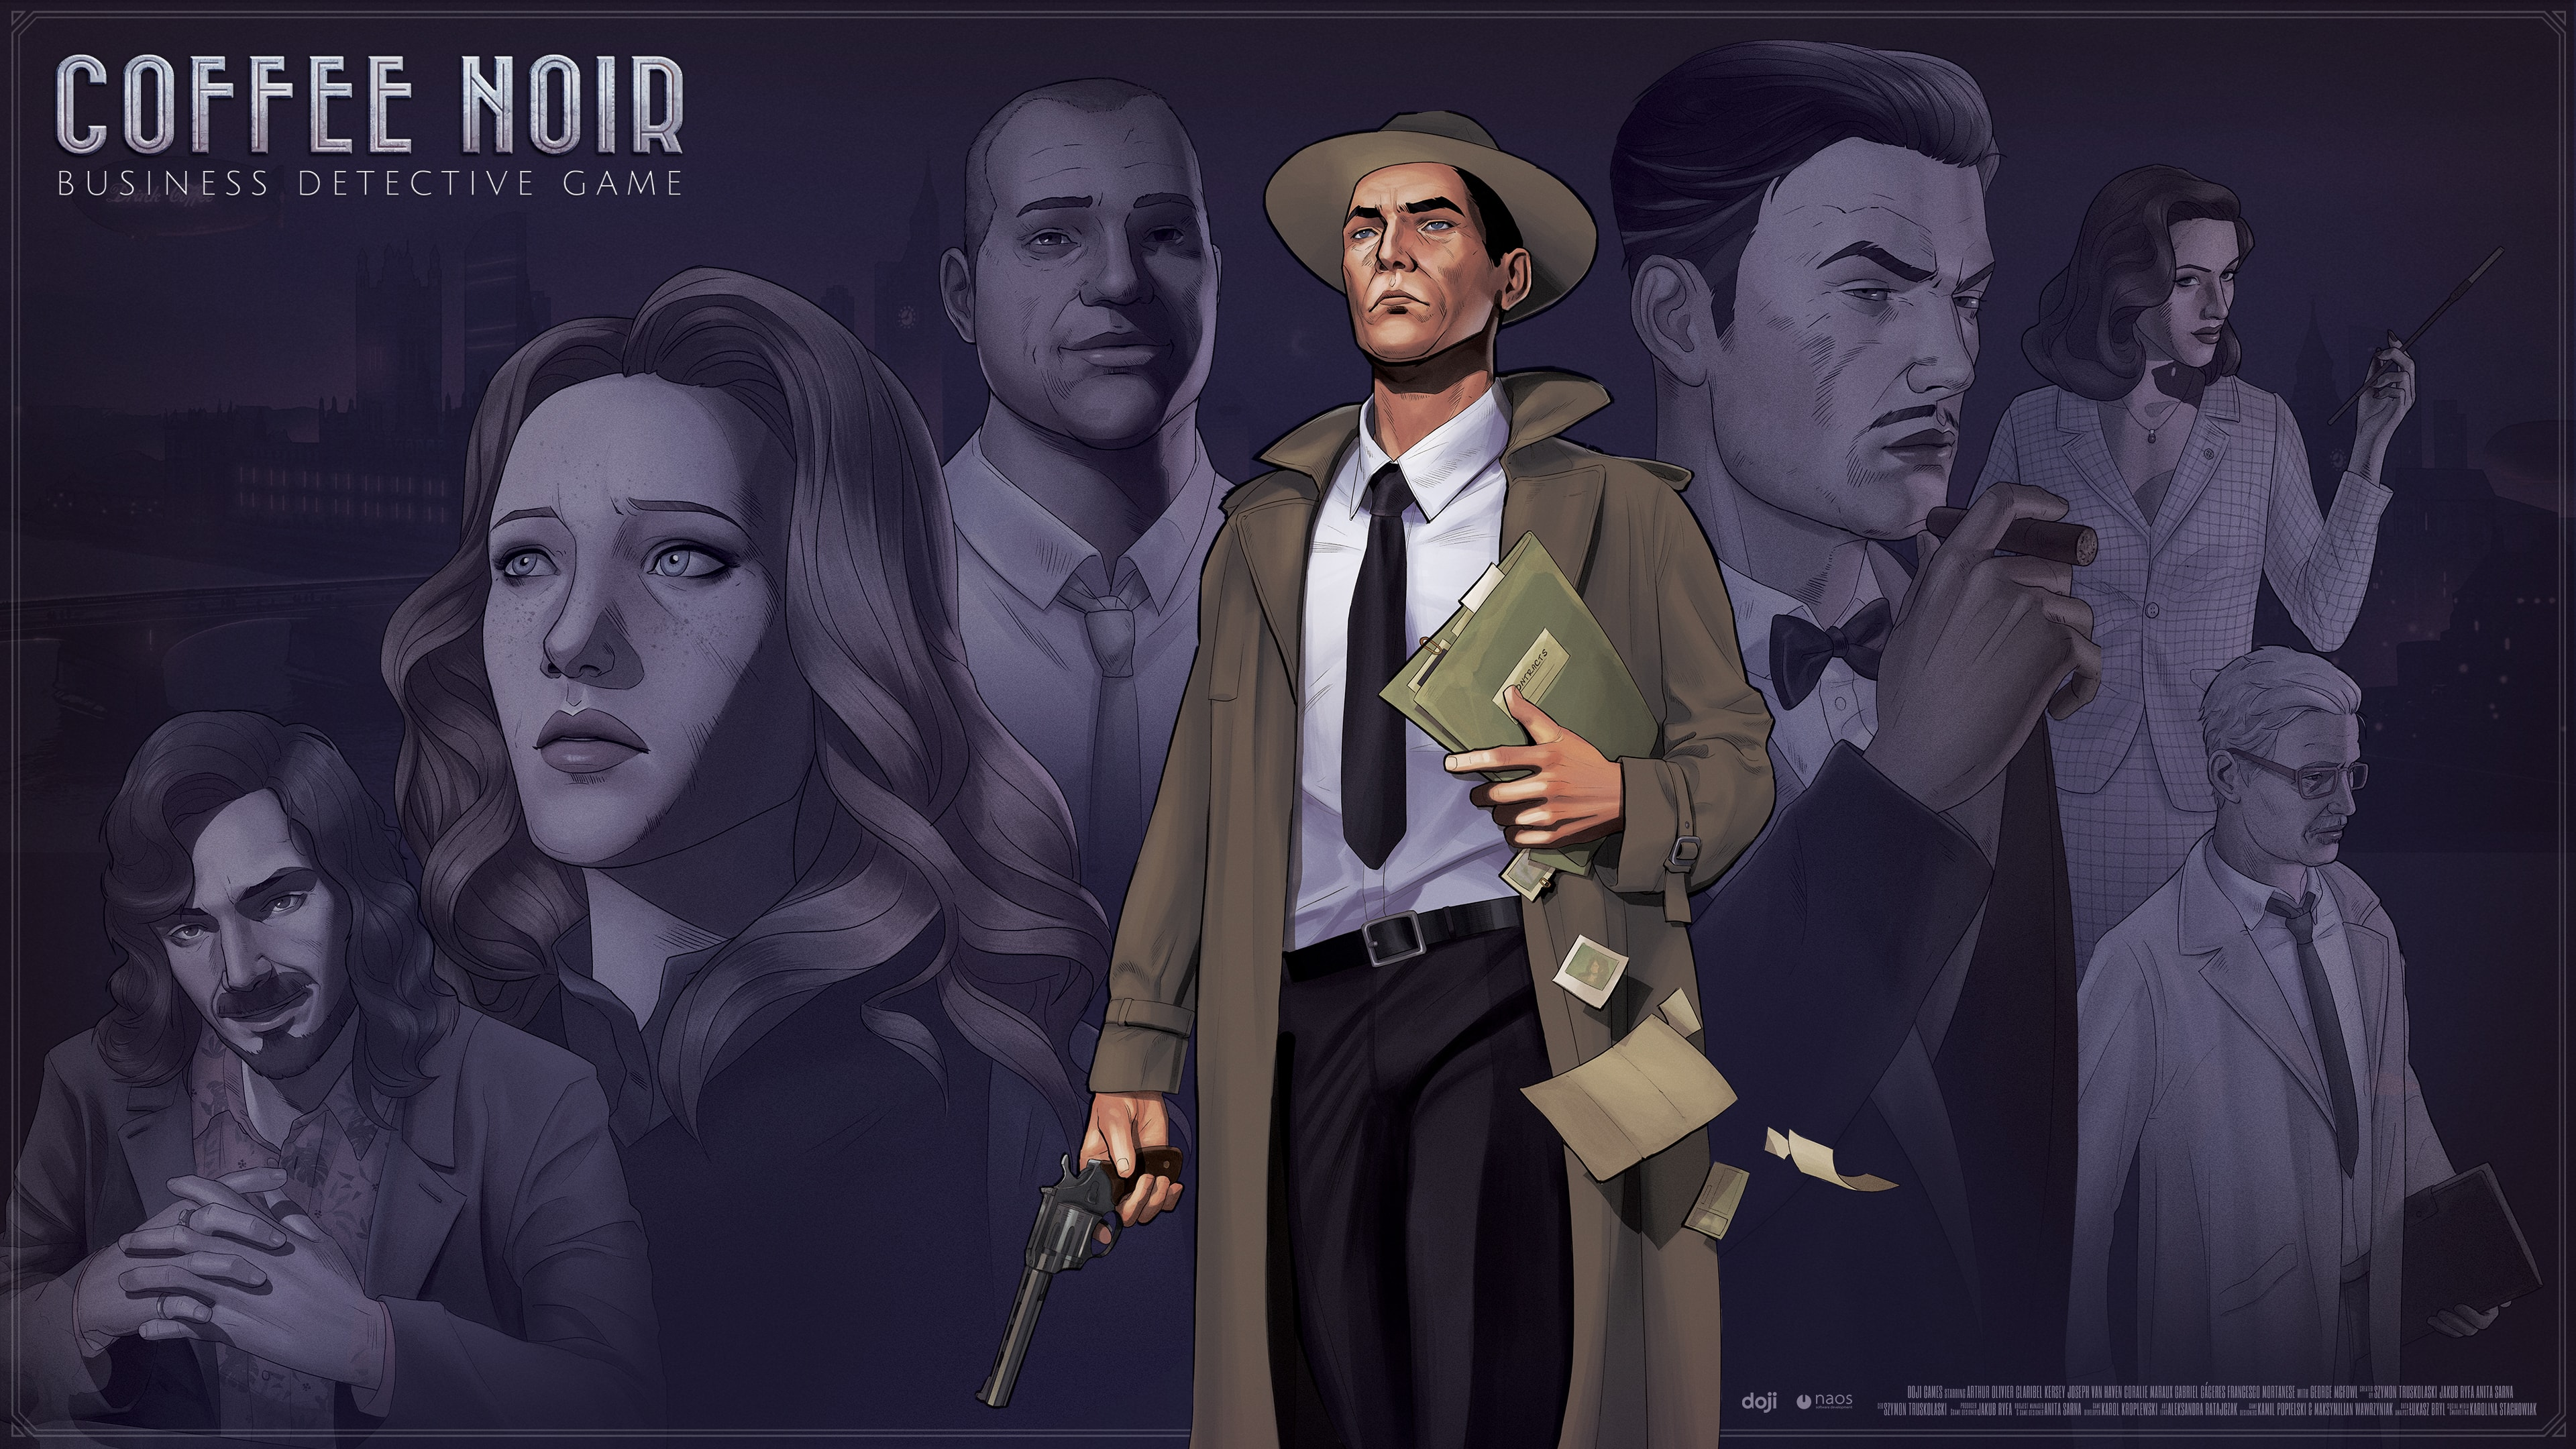 Promotional image with Arthur standing in the front and several characters in the back. A logo Coffee Noir: Detective Business Game is placed to the left.